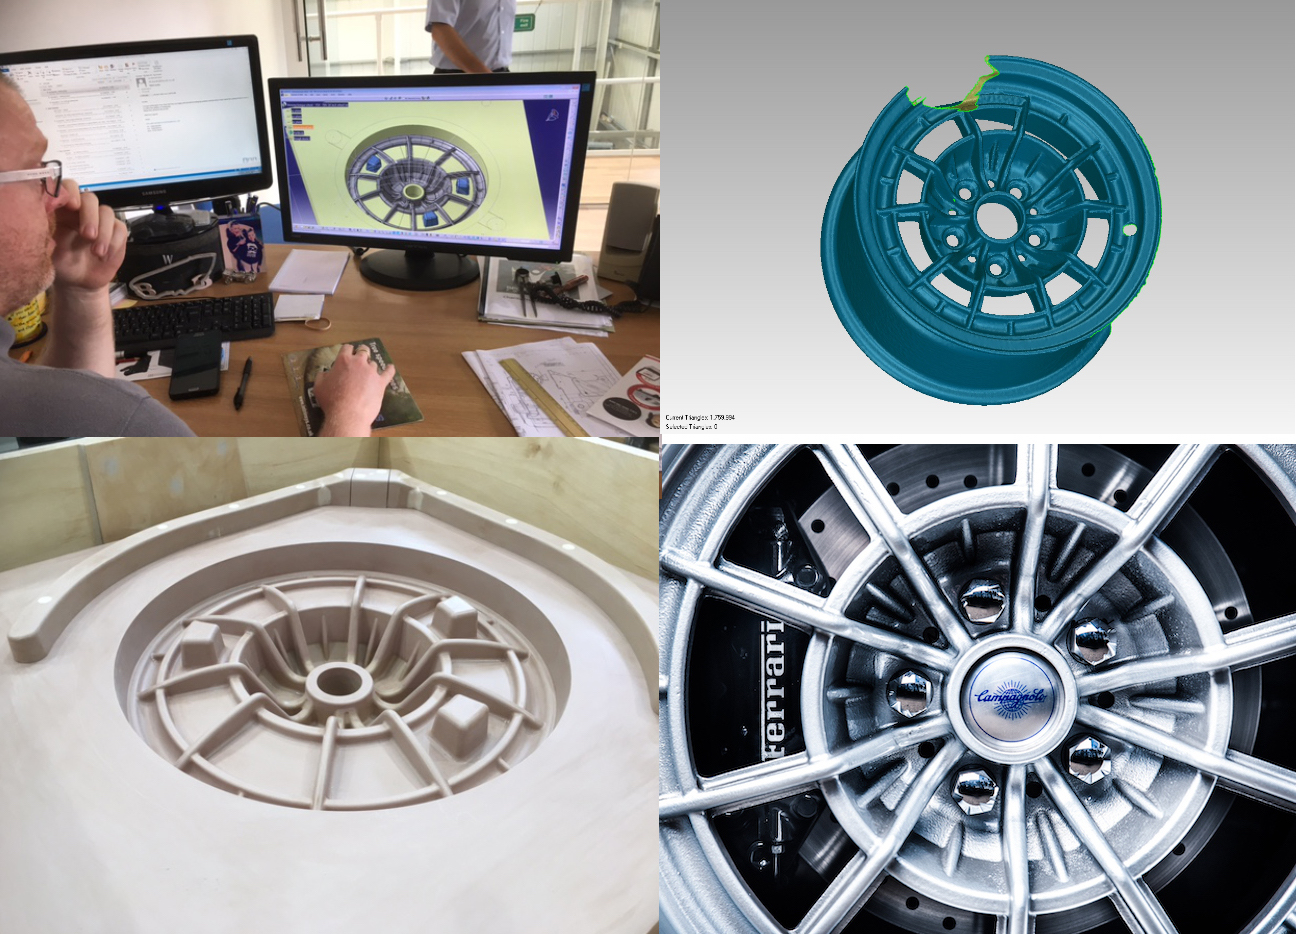 Using the latest technology to laser scan an original Campagnola 15 inch wheel and then resize it to 17 inches, but use the traditional methods and technique of casting in sand moulds to keep a totally authentic look to these iconic wheels.